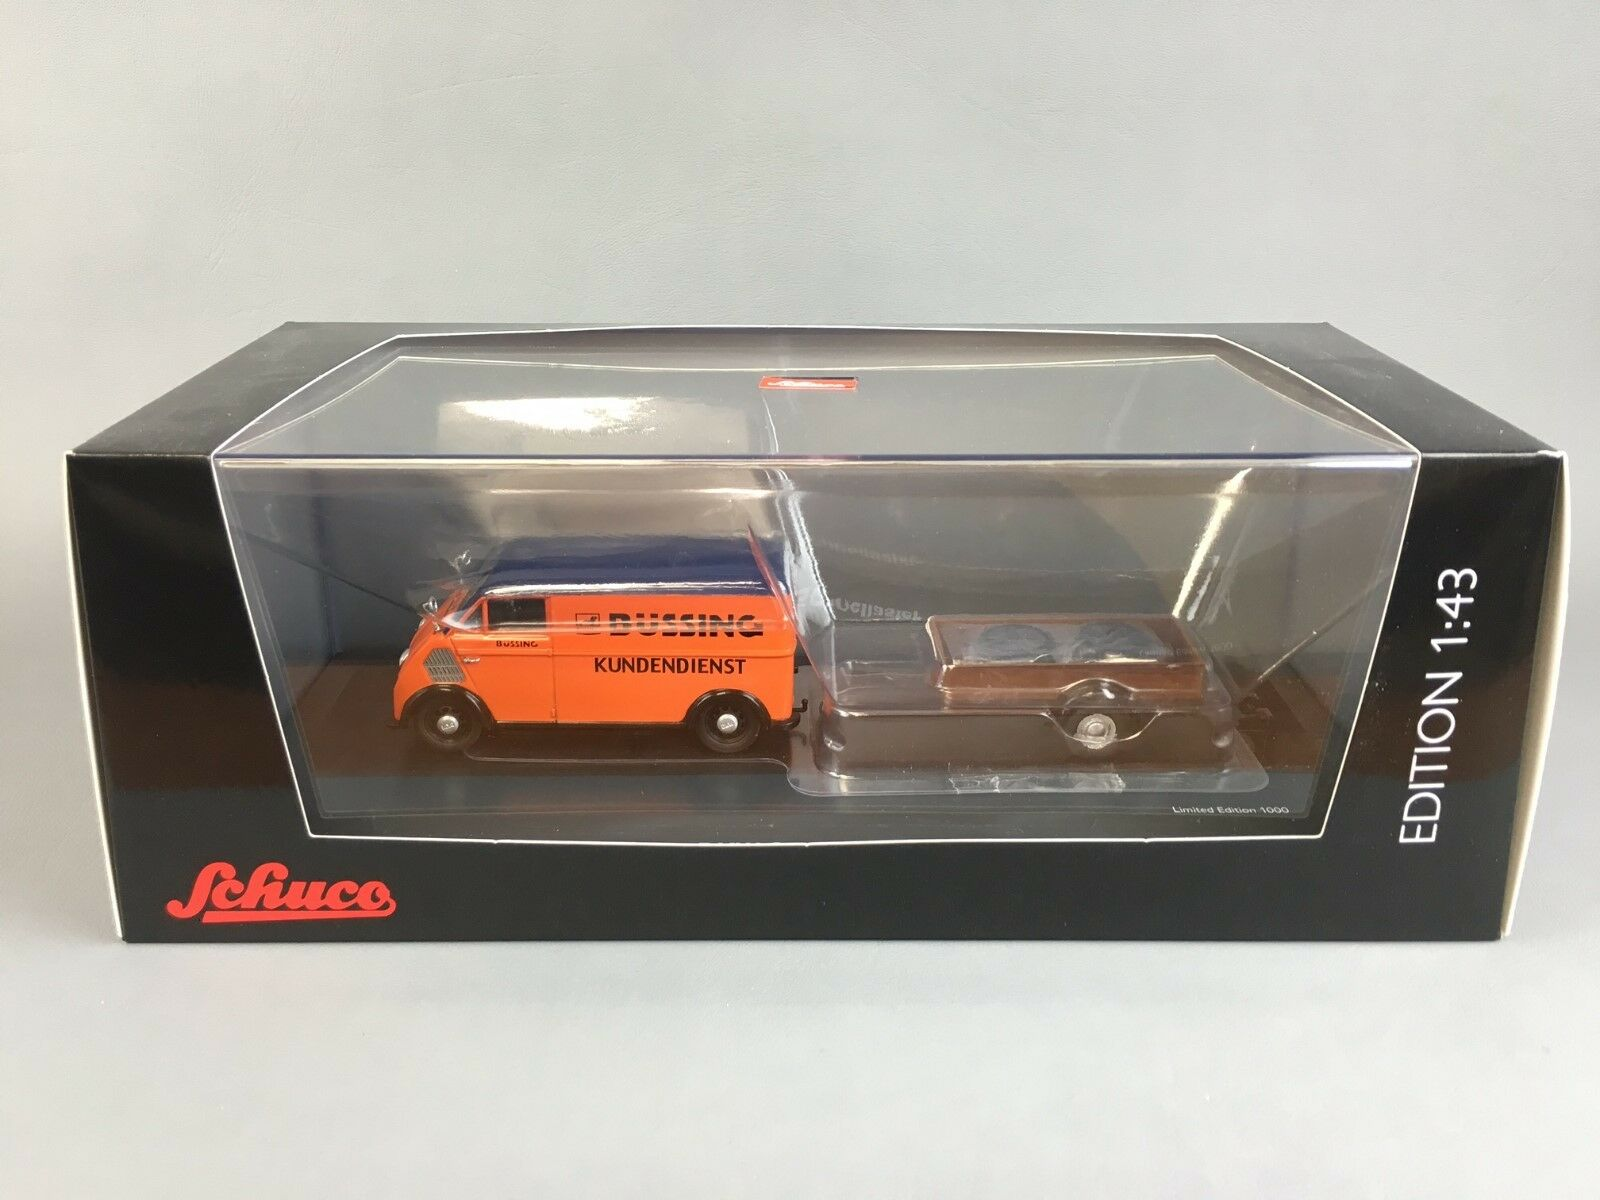 Schuco DKW Orange Schnellaster avec remorque DIECAST SCALE MODEL 1 43 Ltd ED 1000